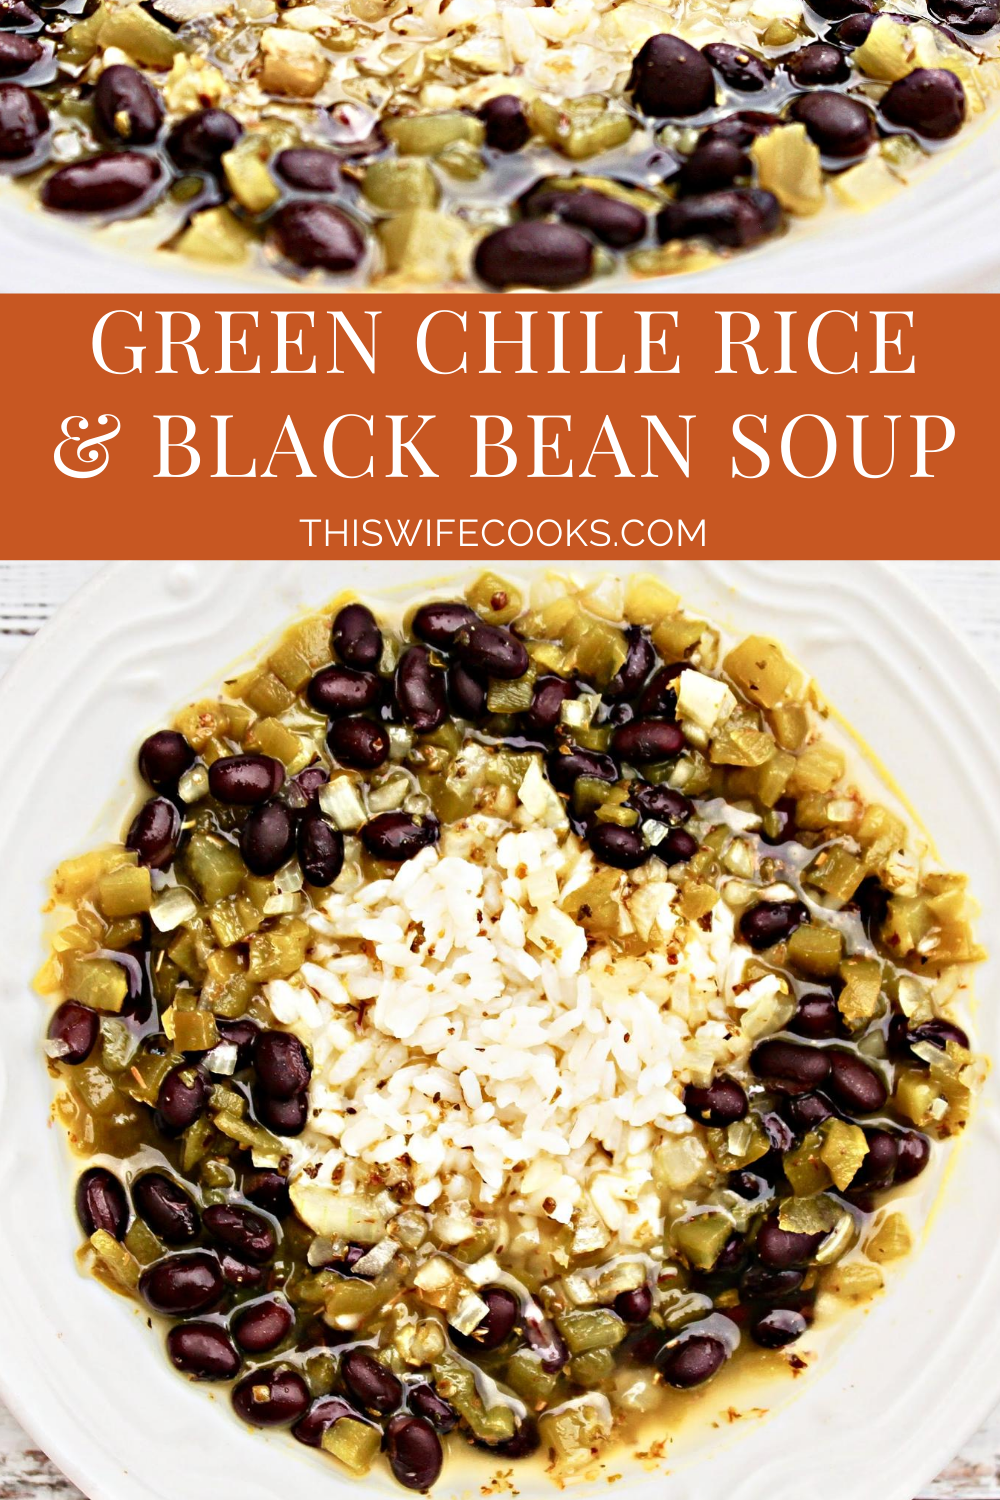 Green Chile Rice and Black Bean Soup ~This quick and easy soup combines the Tex-Mex flavors of green chiles, black beans, and Southwest spices. A few simple ingredients are all you need for a hearty and healthy dinner on the table in under 30 minutes! via @thiswifecooks